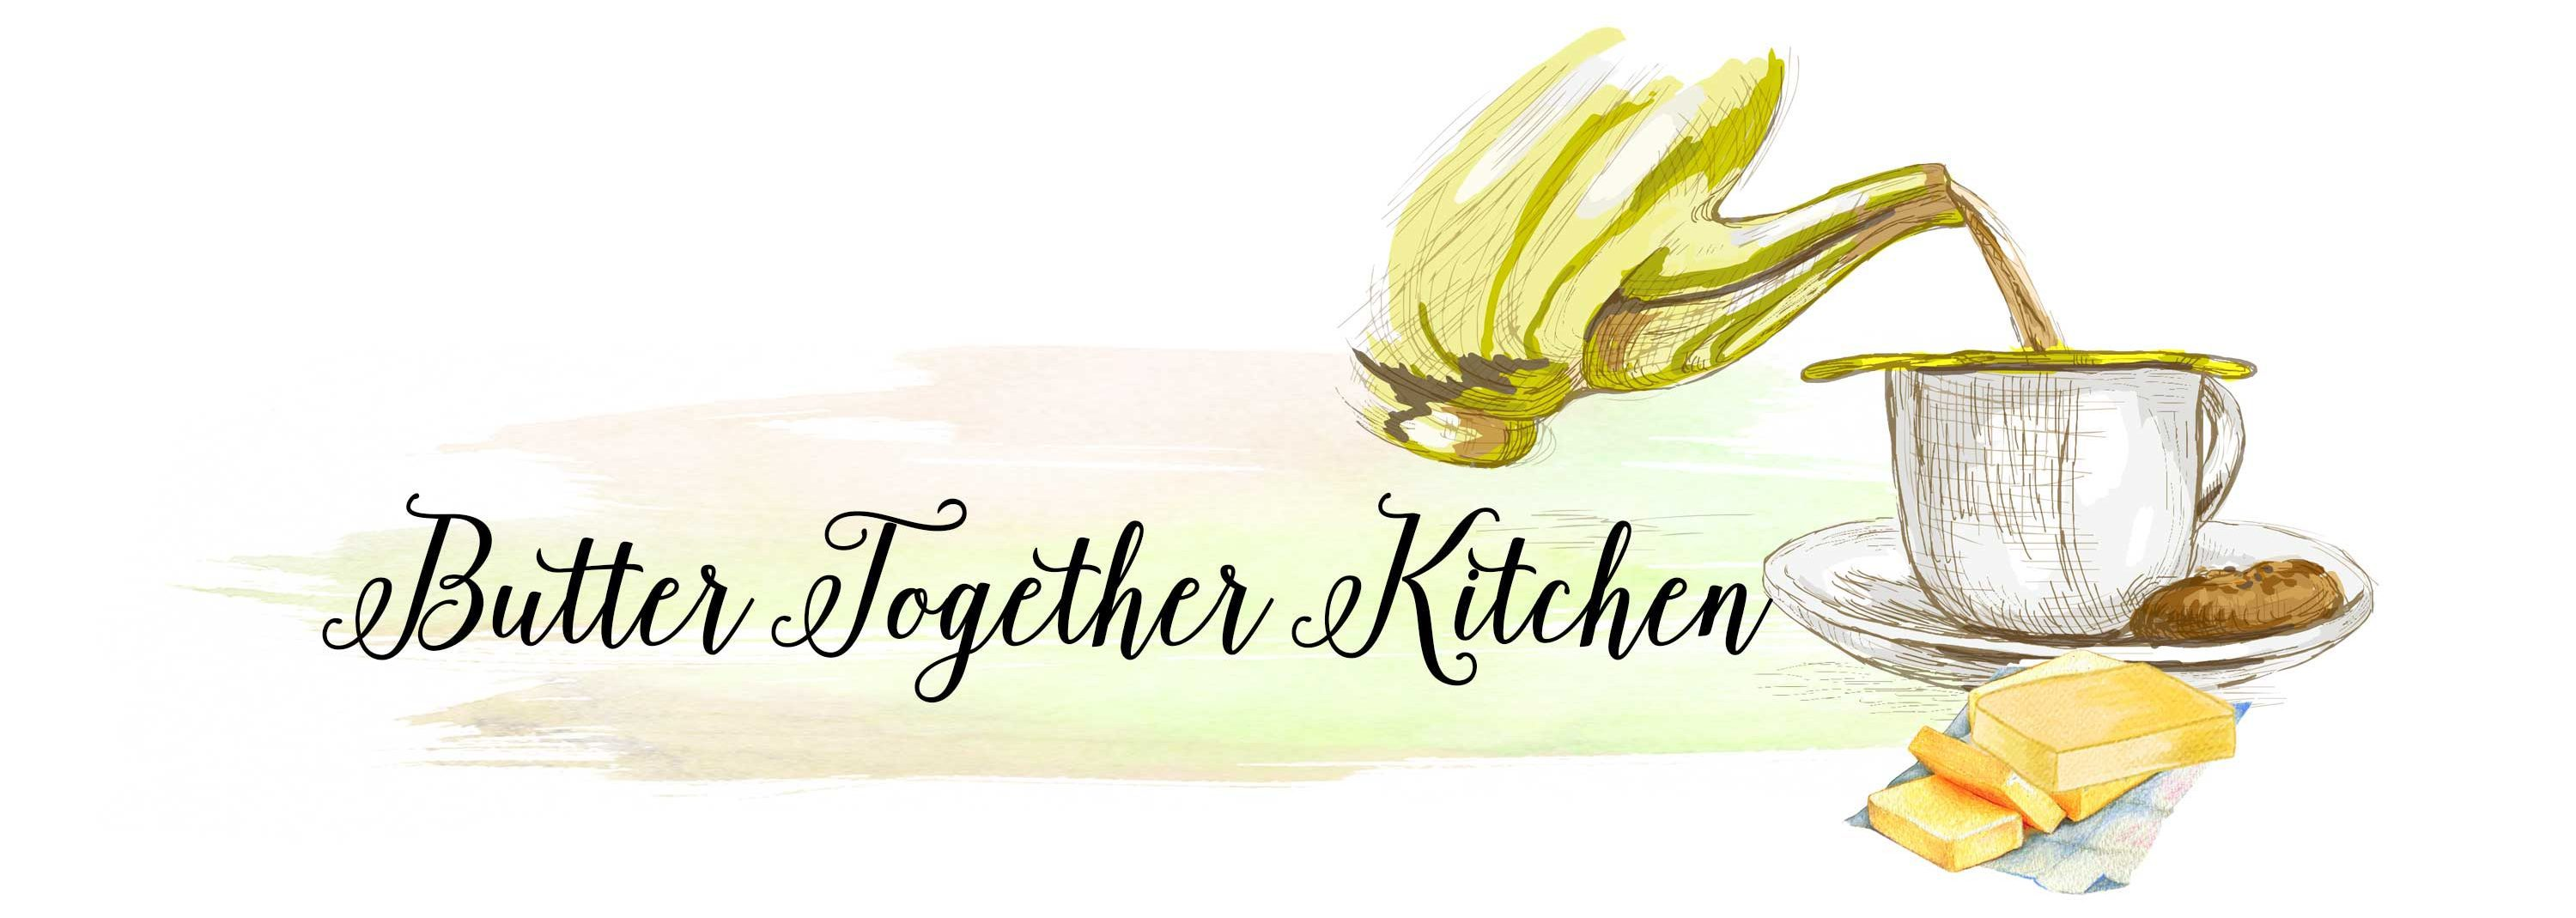 Butter Together Kitchen